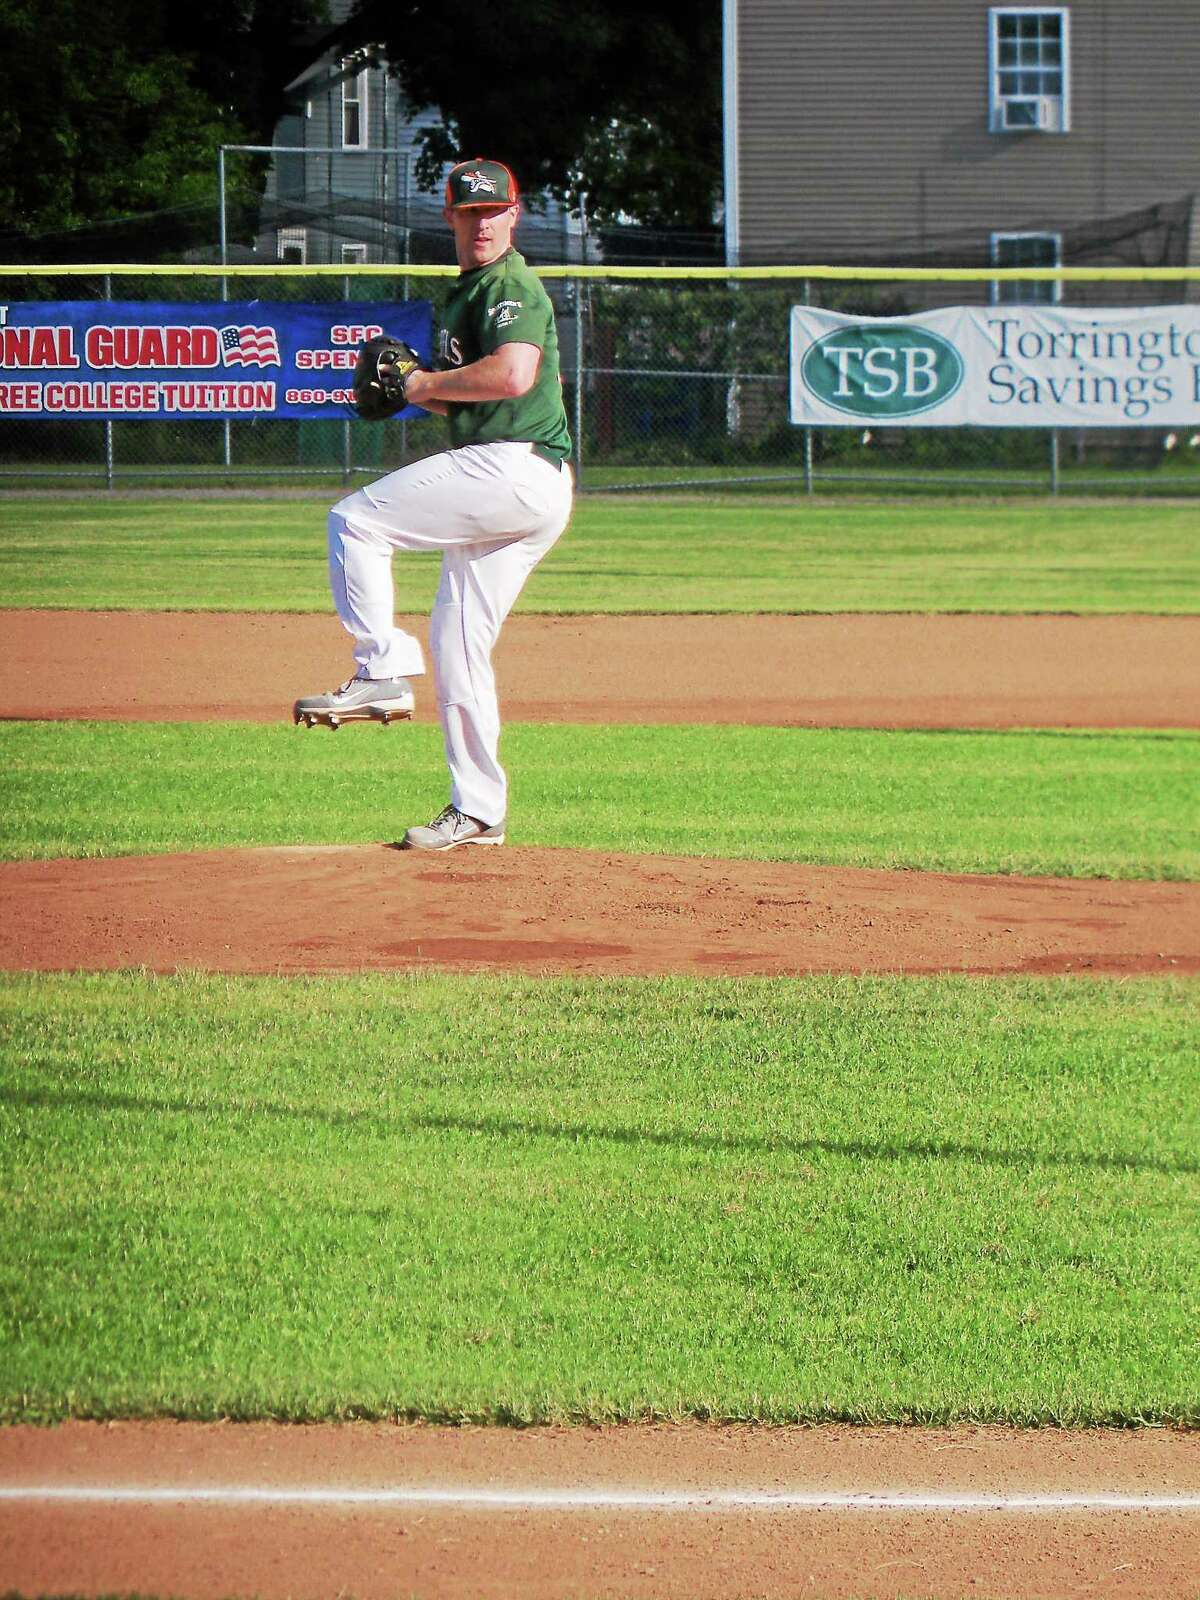 Torrington player/coach Curtis Anthony made his first start of the year, pitching five strong innings before the game slipped away from the Rebels.